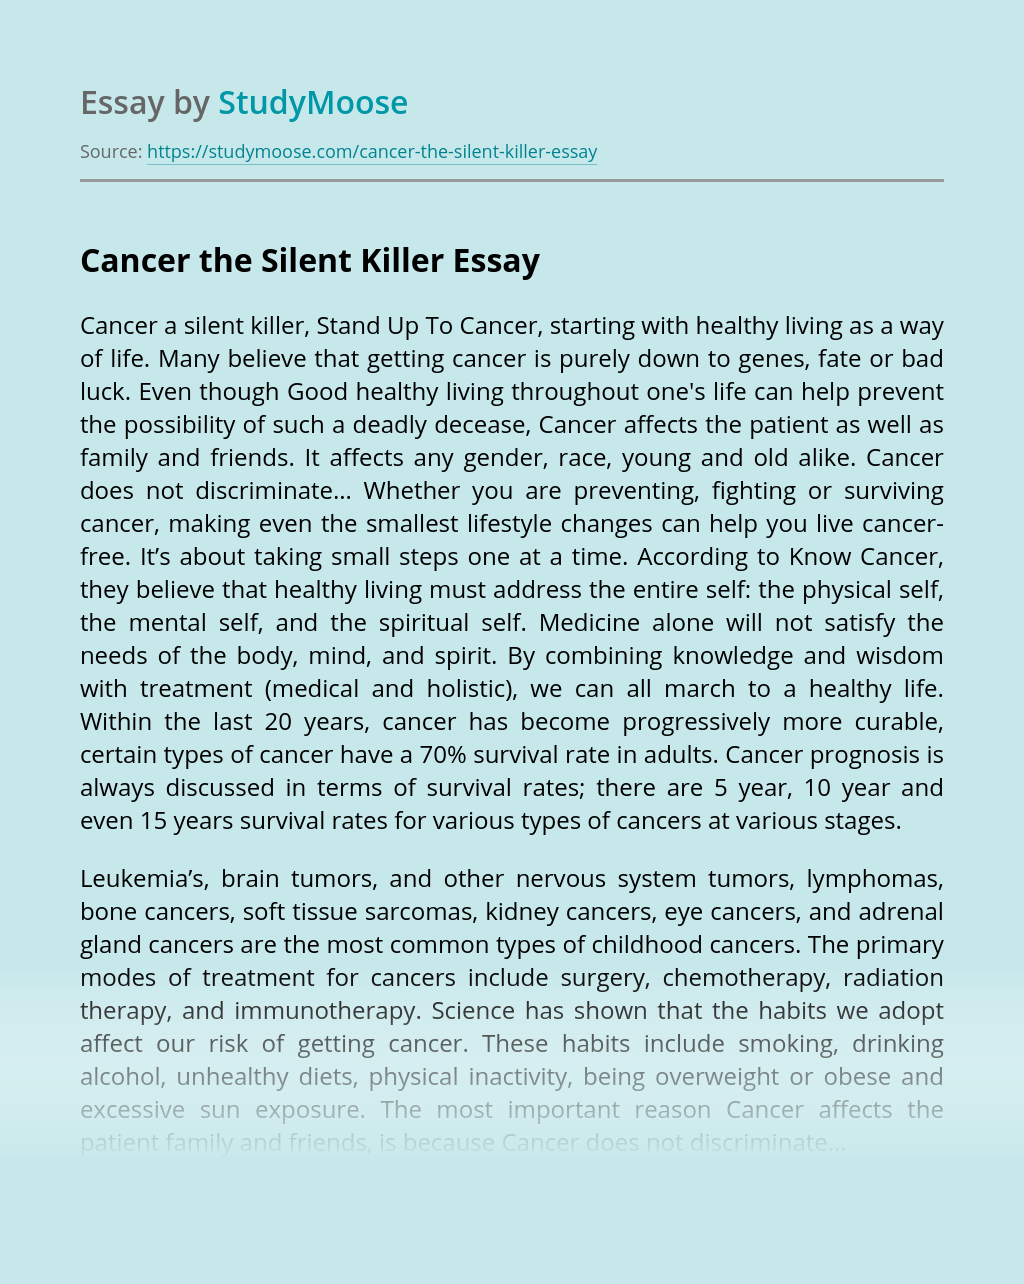 Cancer the Silent Killer